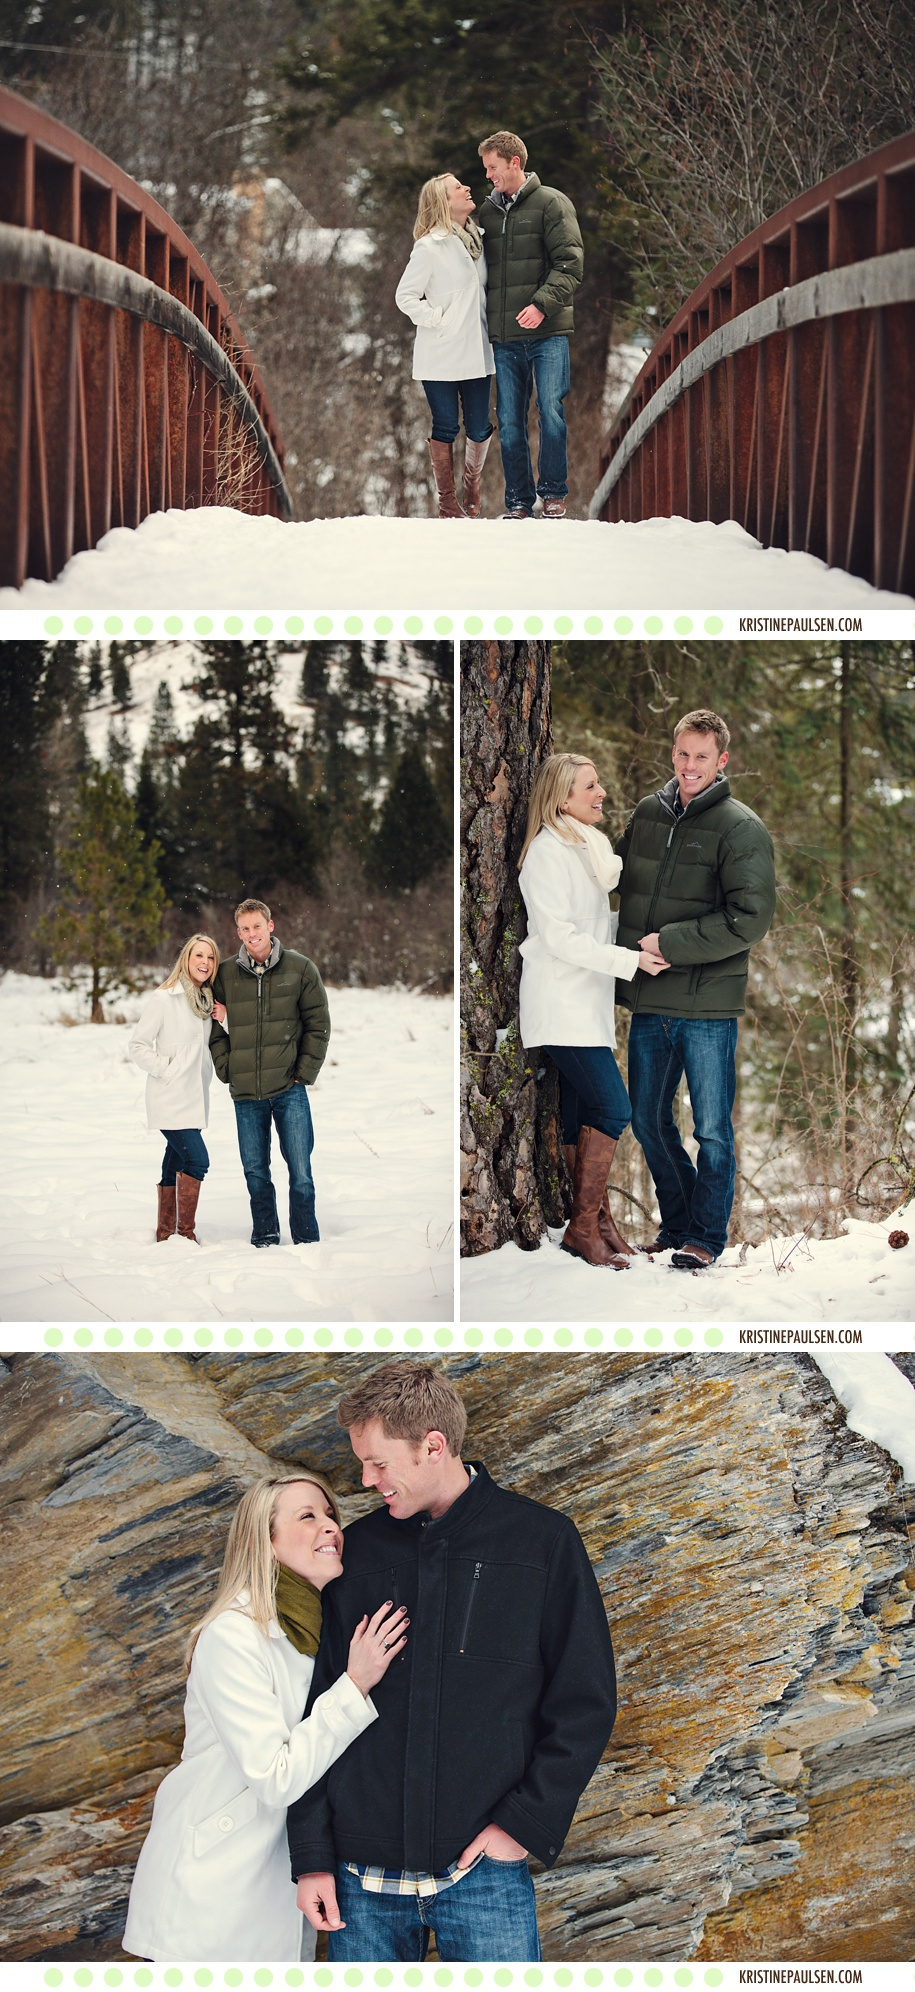 Kisses-Amidst-the-Evergreens-Brianne-and-Colins-Missoula-Winter-Engagement-Session